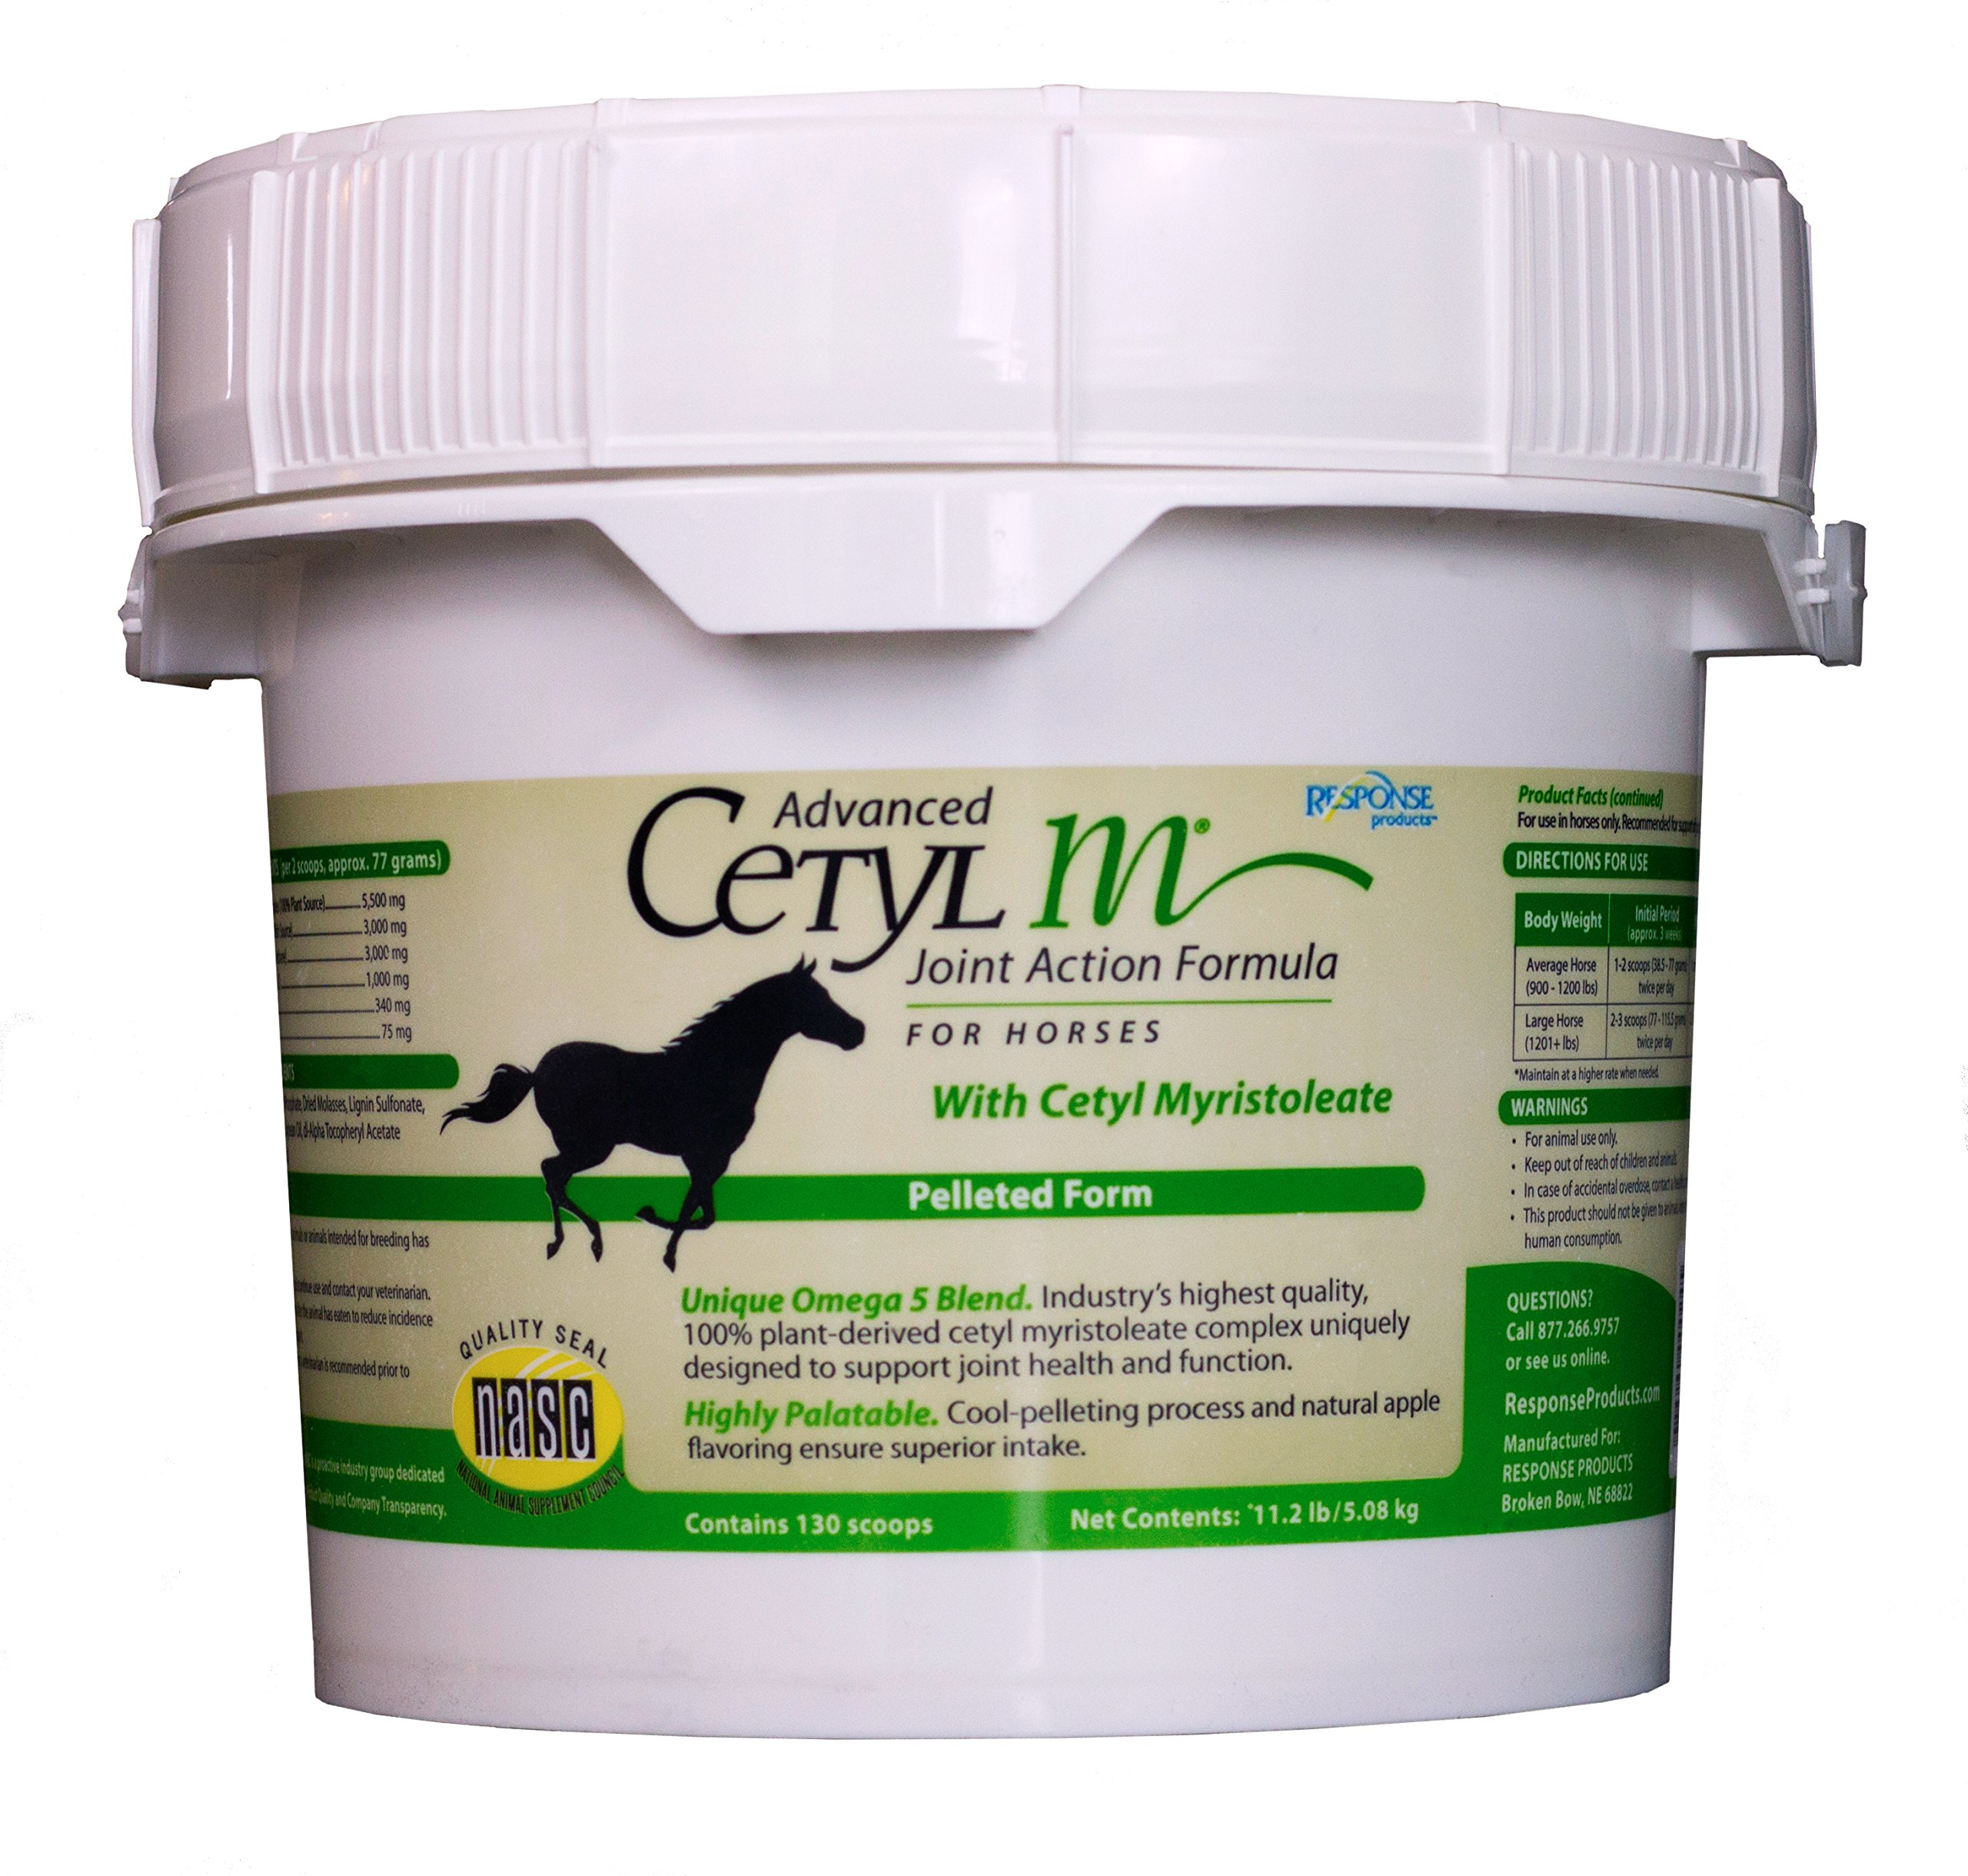 Cetyl M Advanced Joint Action Formula for Horses-Pellets 11.2 by Cetyl M (Image #1)